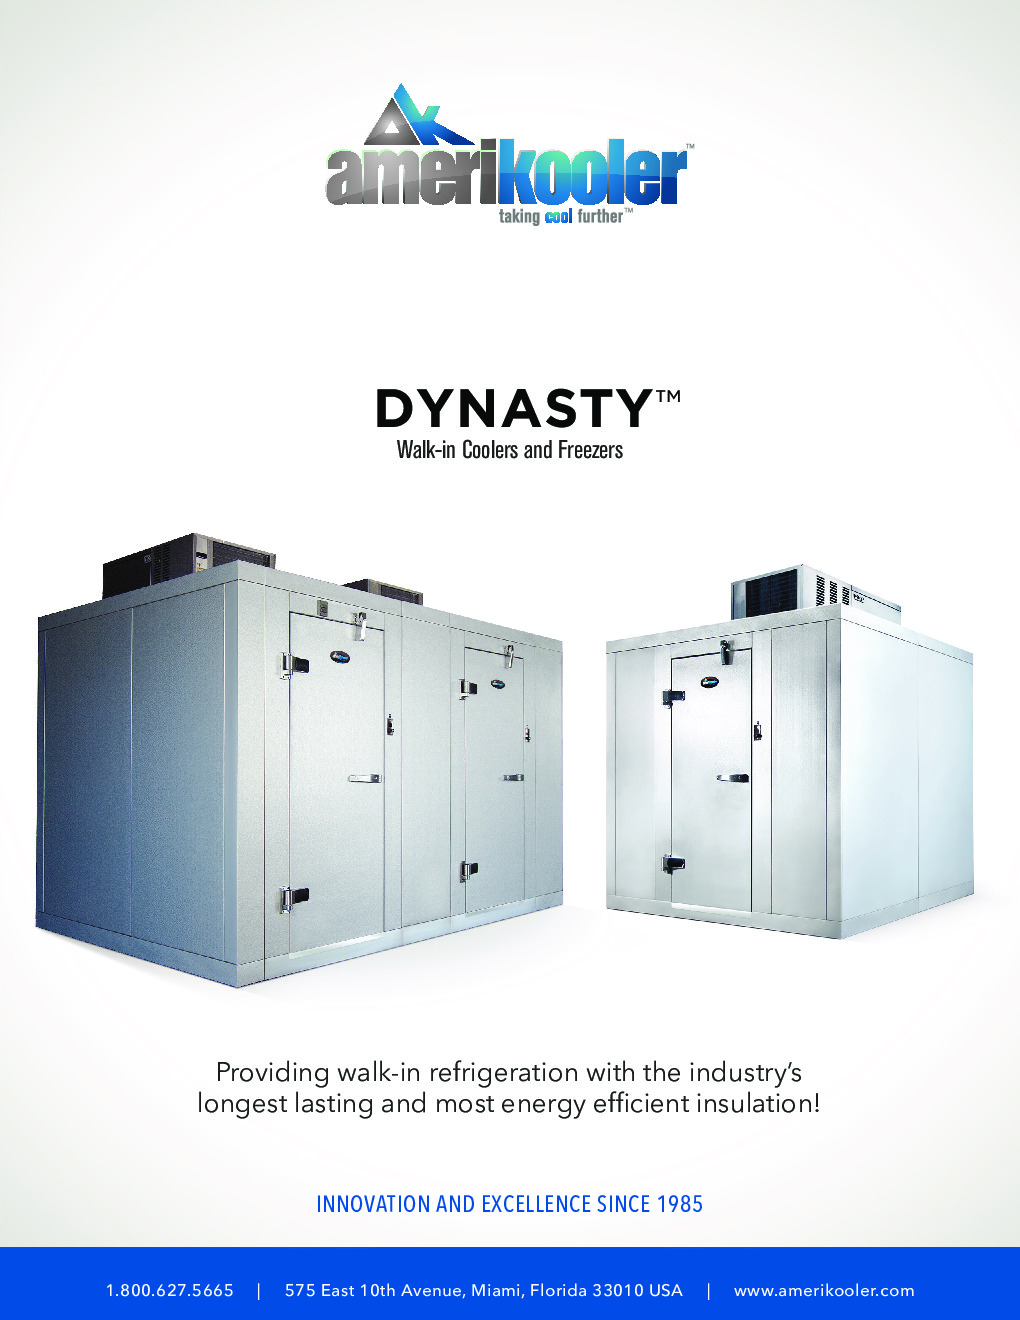 AmeriKooler DW091777N-4/13 Indoor 9' X 17' Walk-In, 13' L Cooler without Floor and 4' L Freezer, Box Only